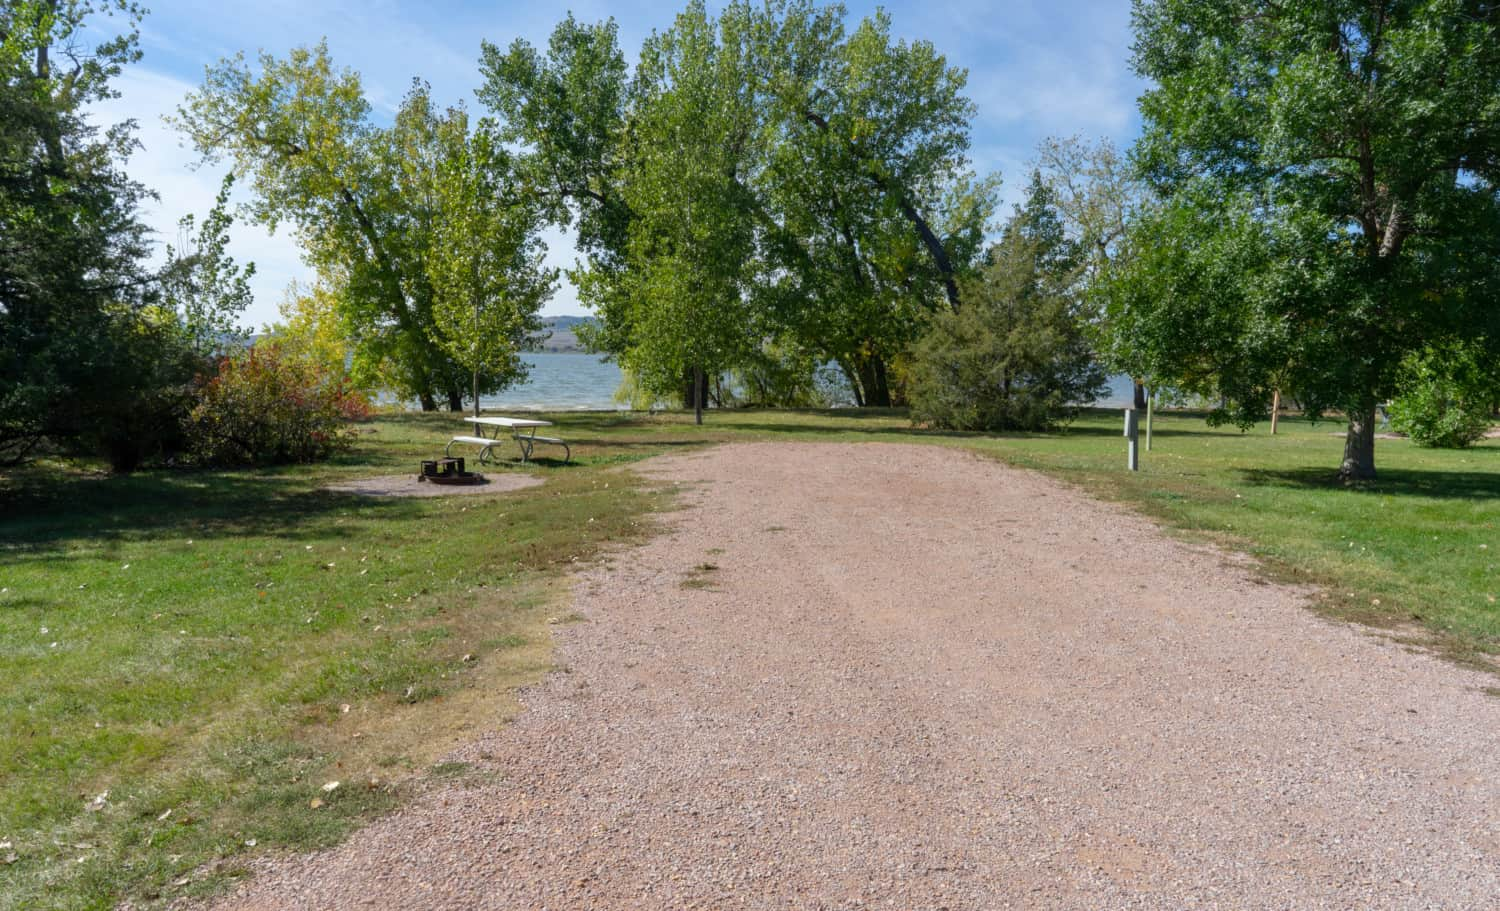 A campsite backing up to the beach at pet-friendly Angostura Reservoir in South Dakota's Black Hills